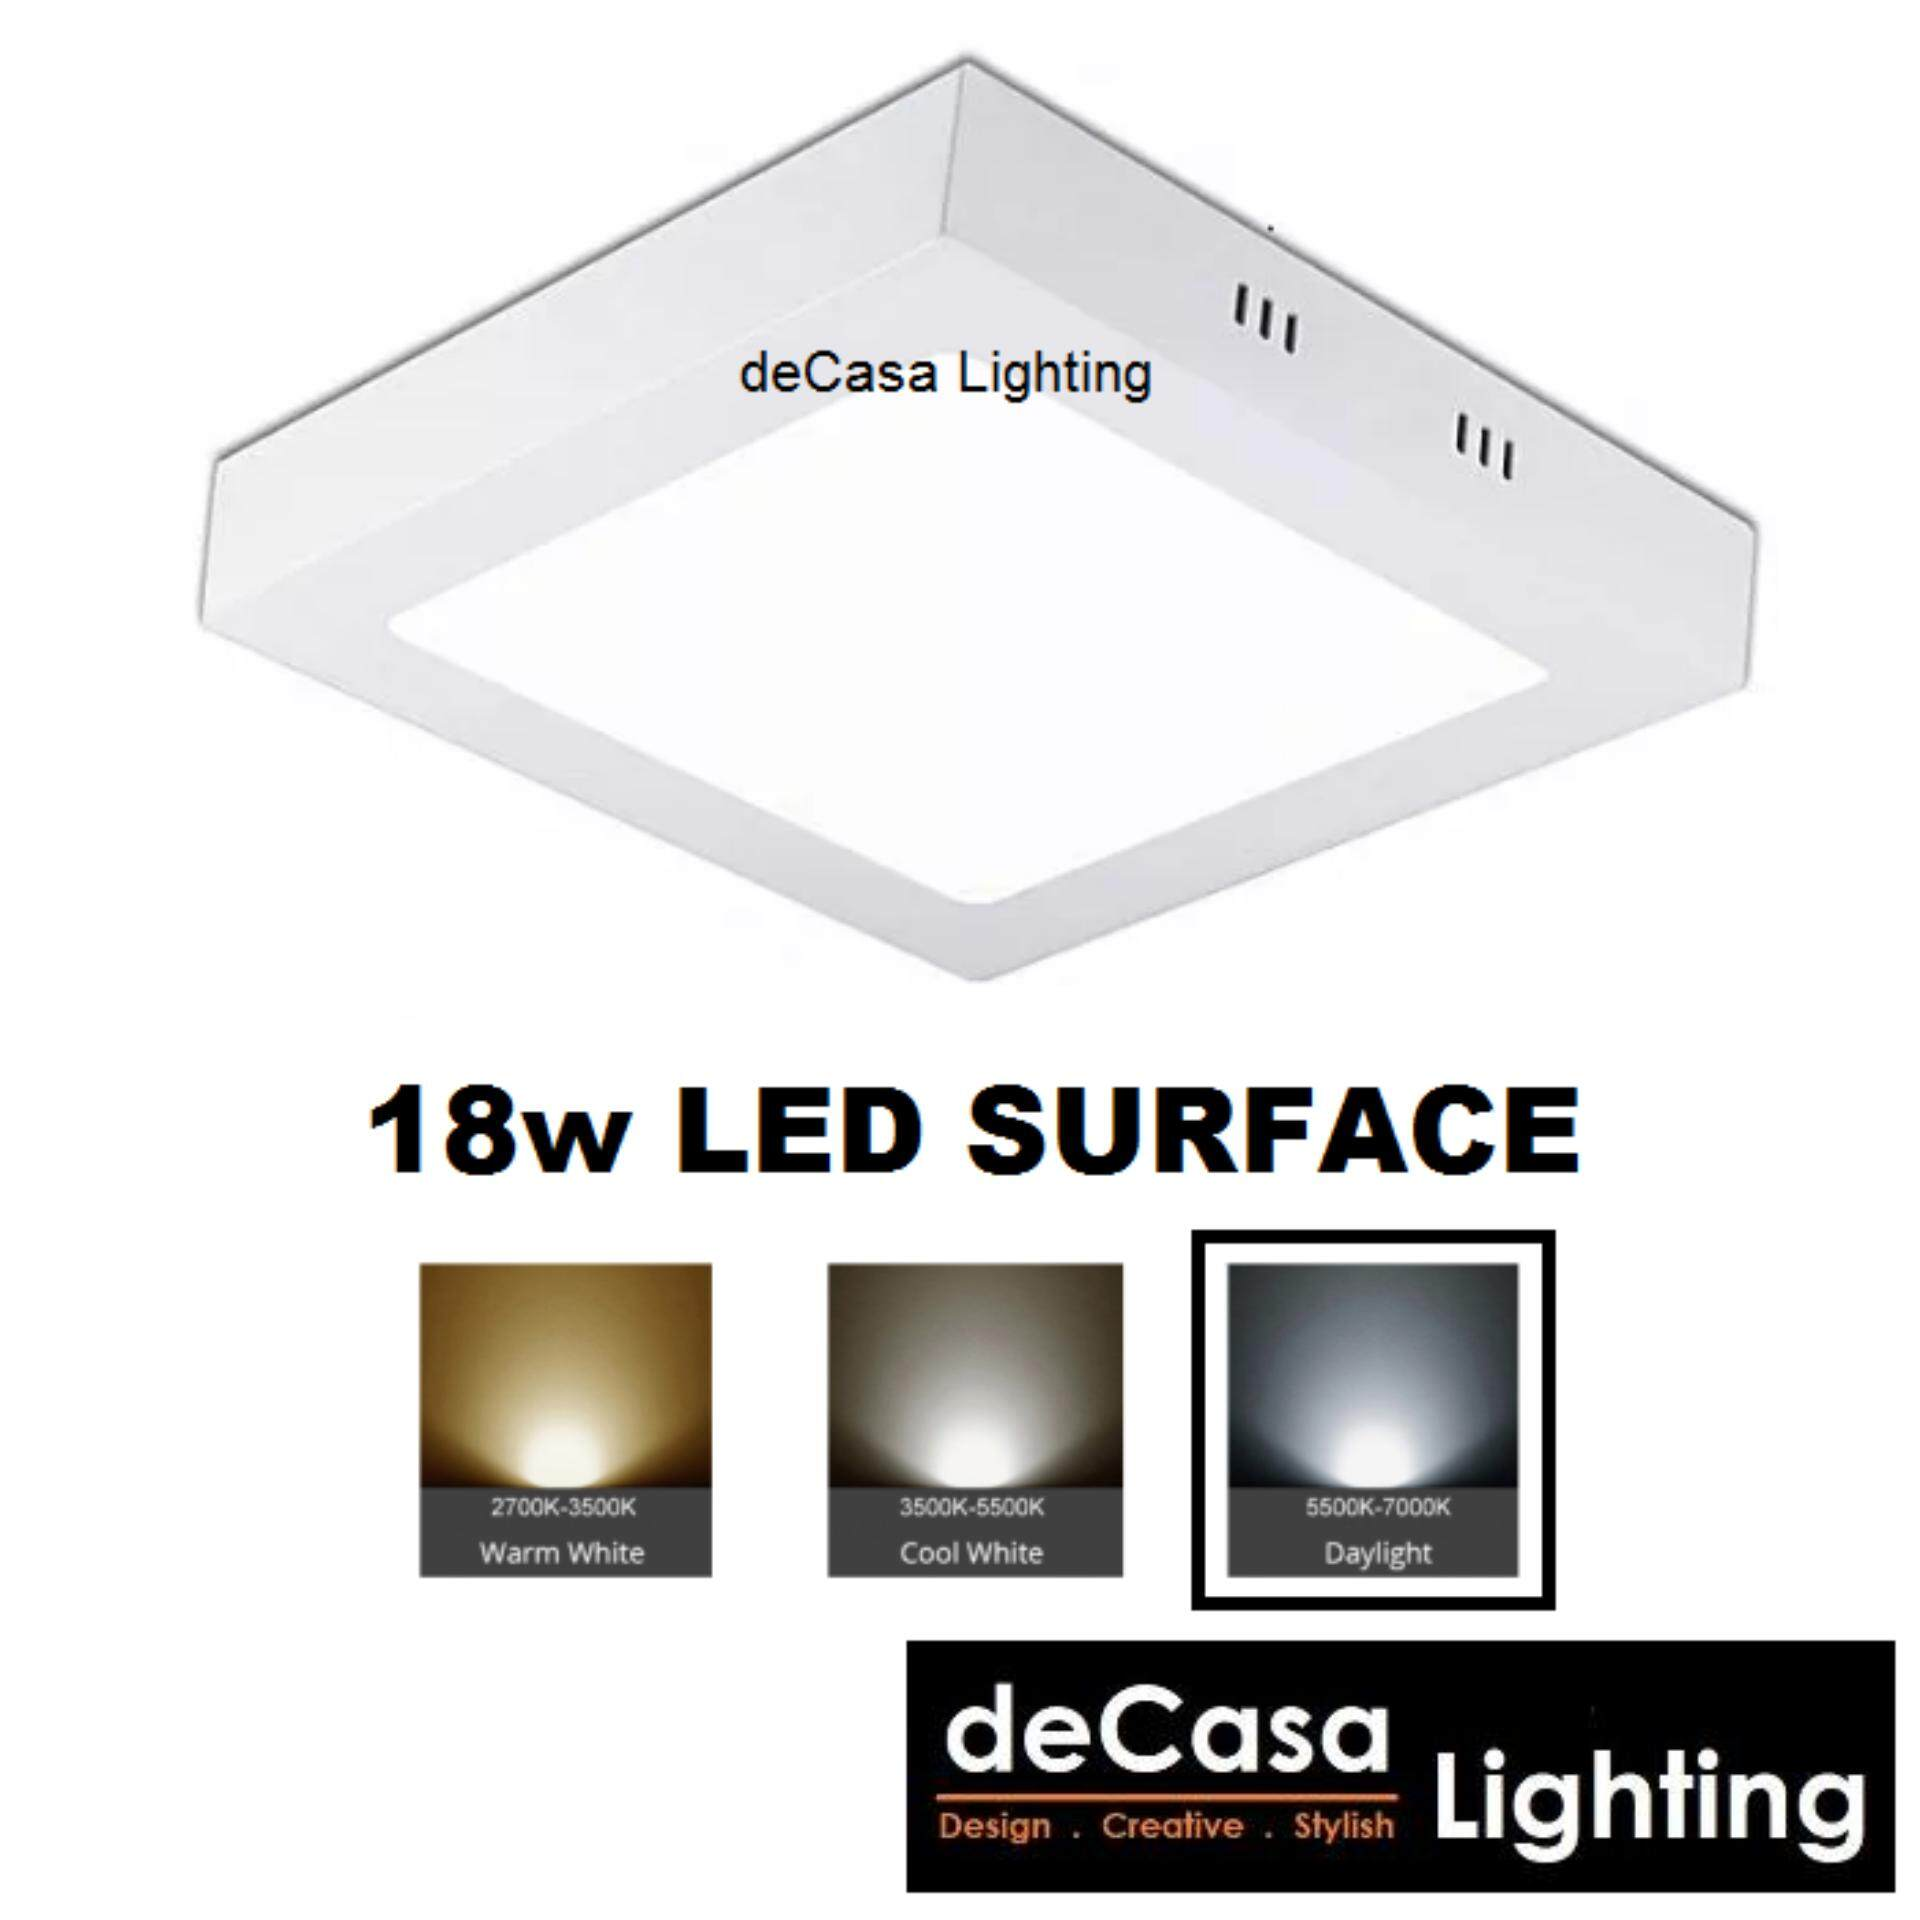 18w Led Surface Downlight Square Daylight DECASA LED SURFACE LIGHT (AY-18W-DL)